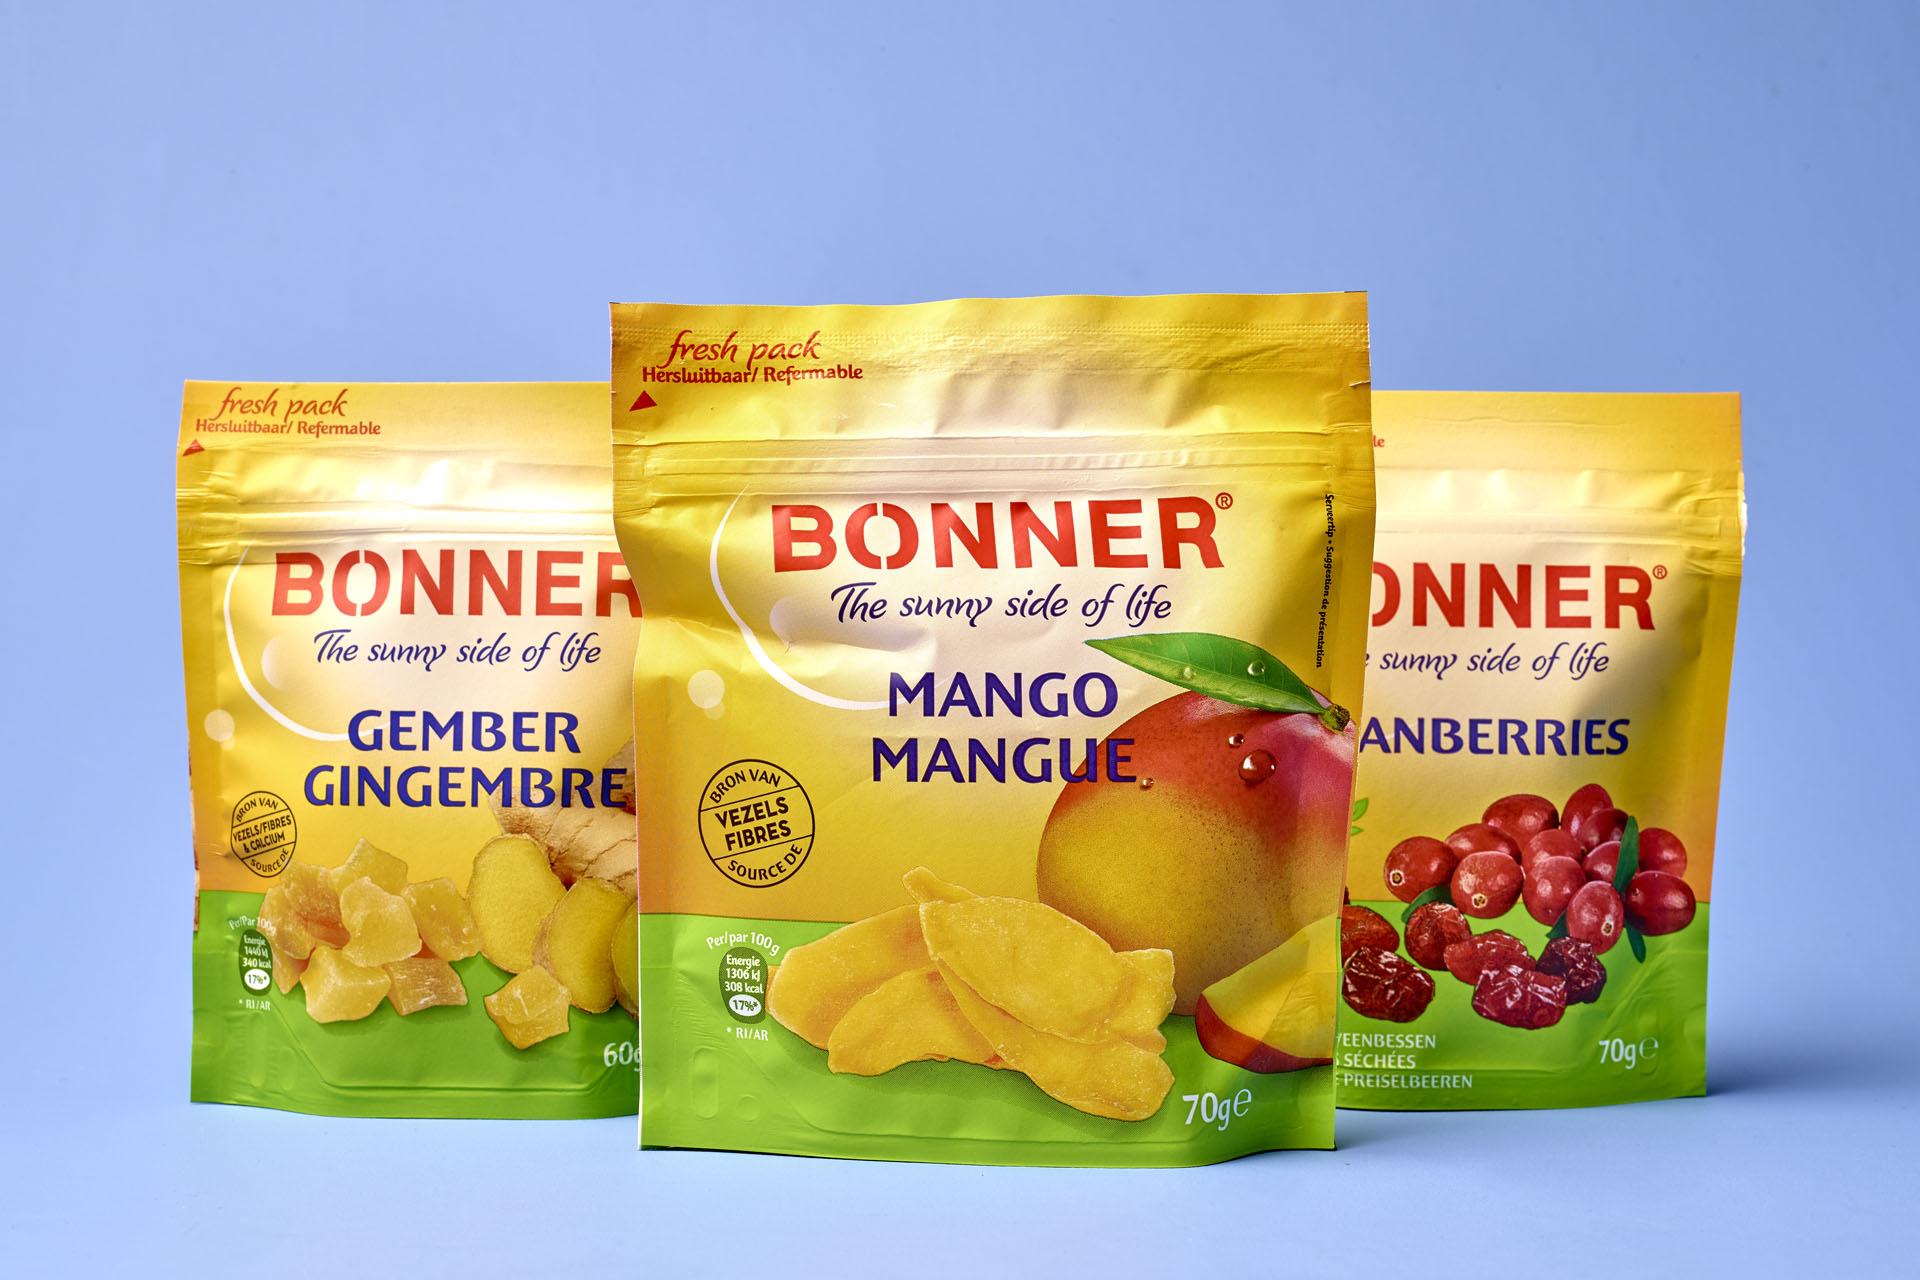 Bonner brand relift by DesignRepublic, branding and packaging design agency Belgium